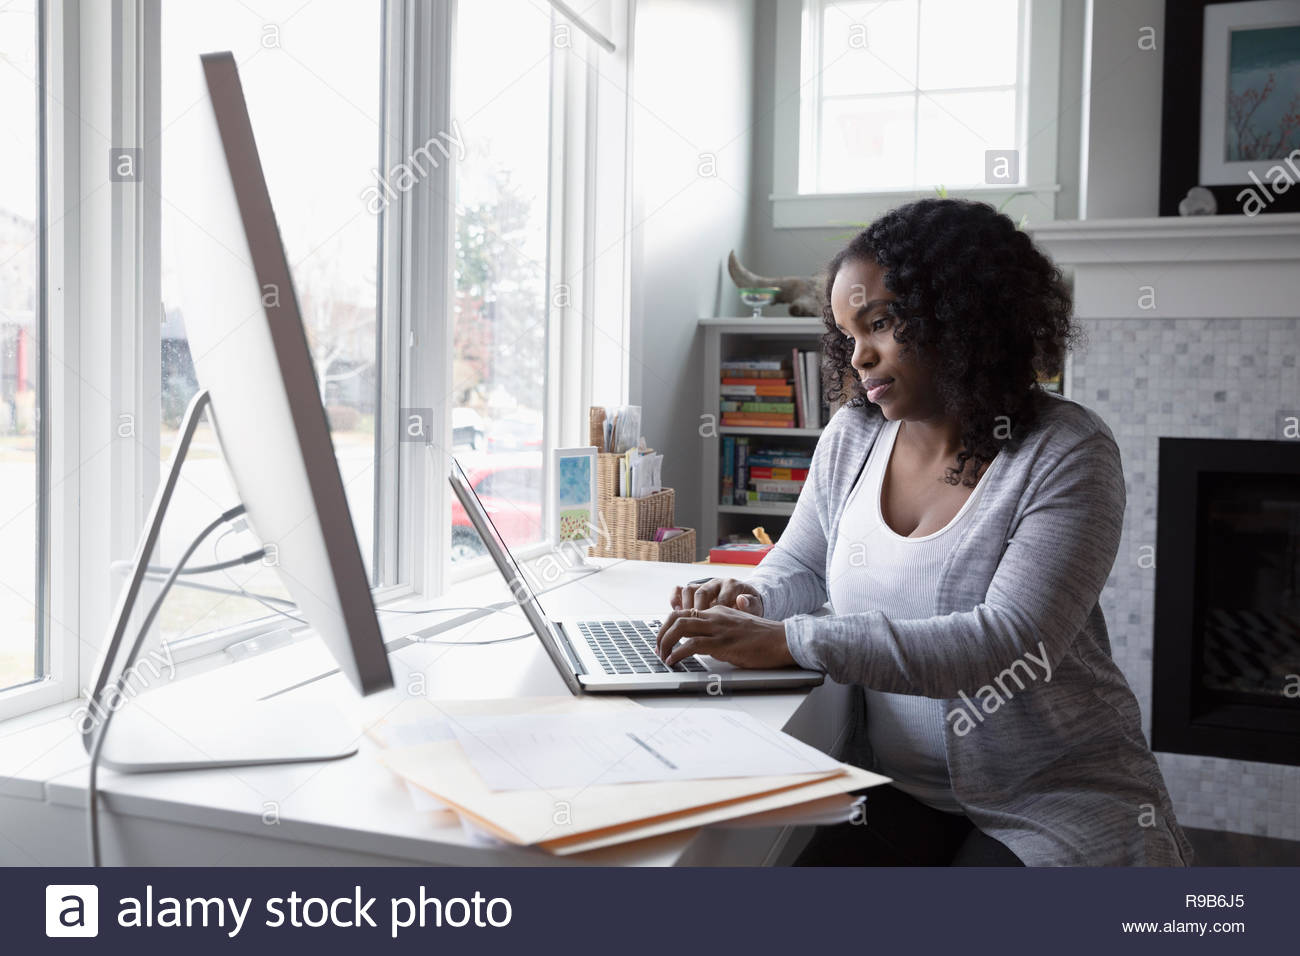 Woman working at laptop in office Photo Stock